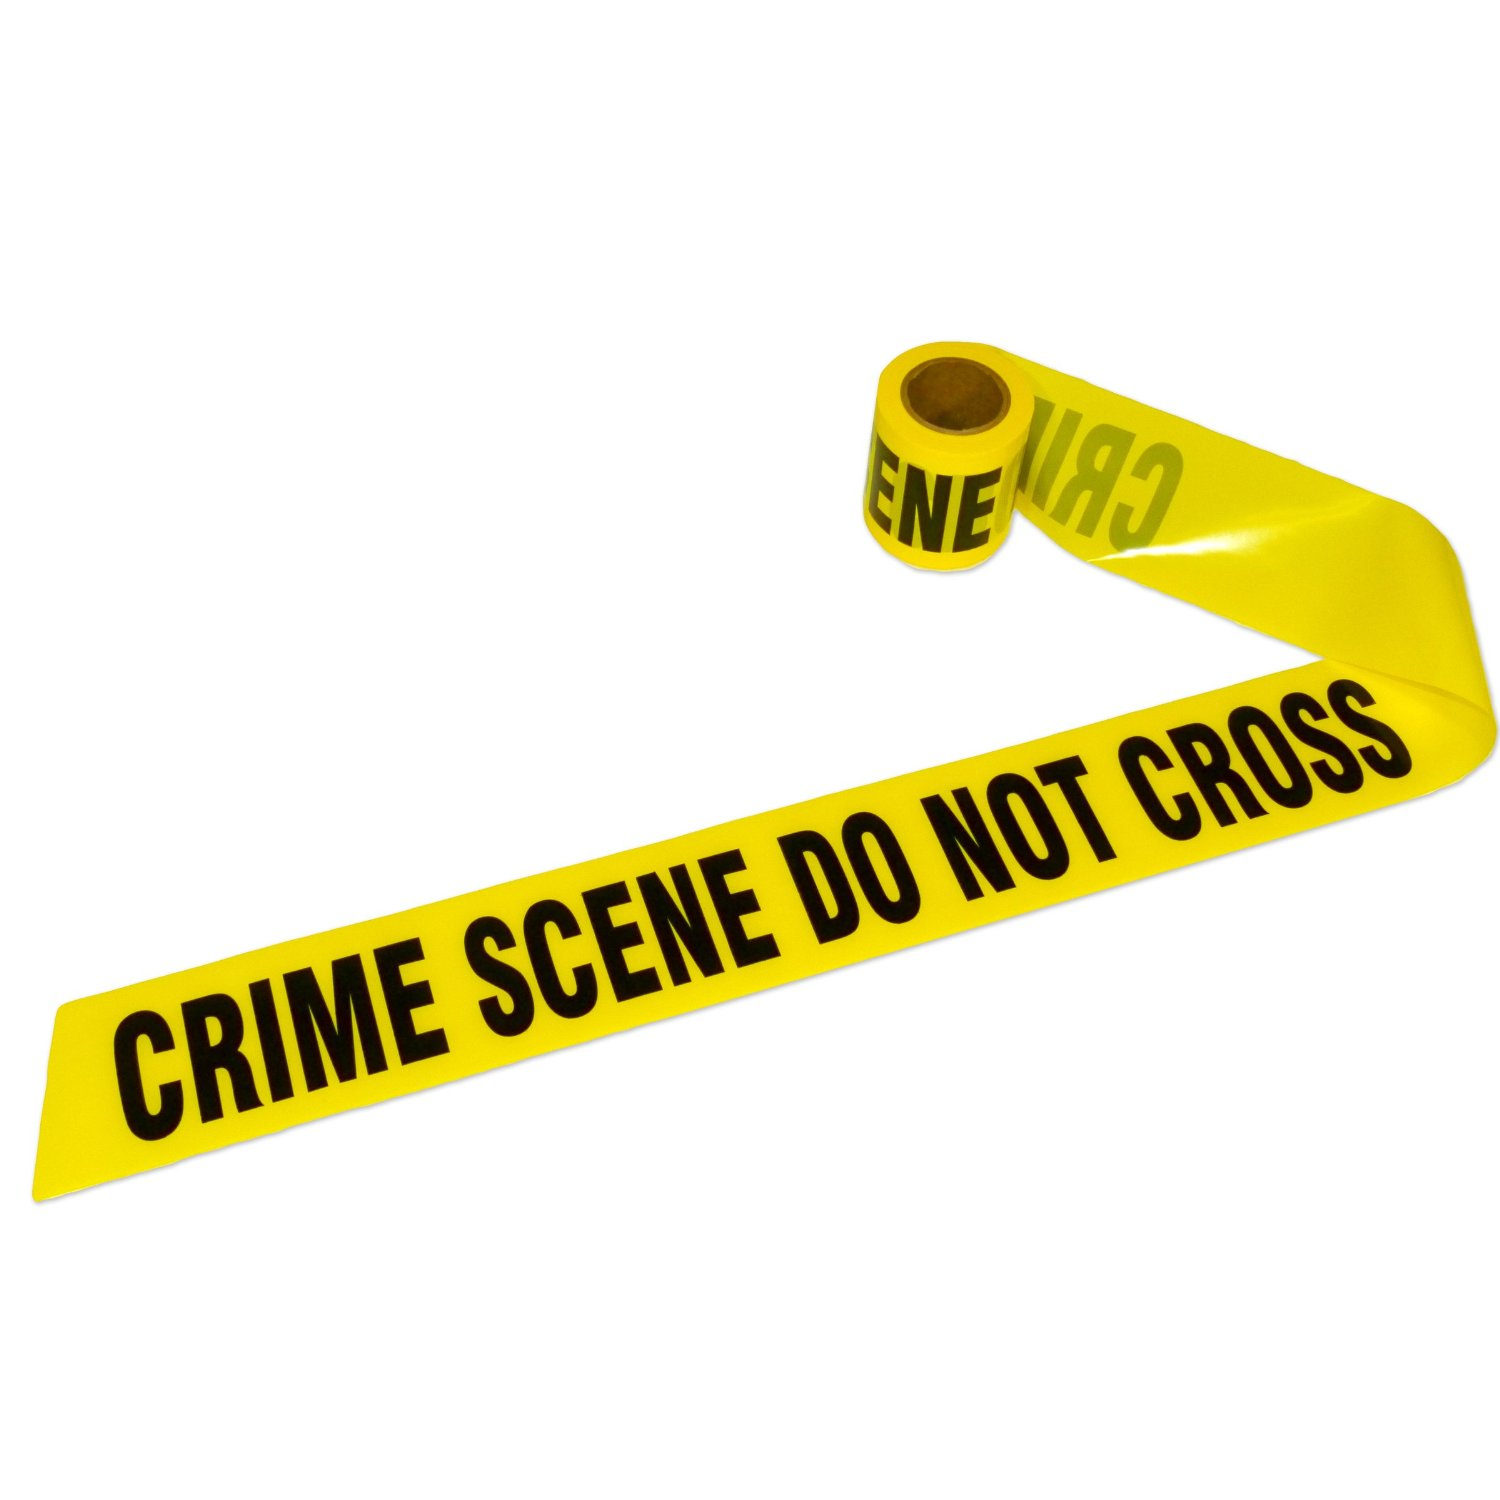 Murderinvestigation clipart black and white library Collection of Crime scene clipart | Free download best Crime ... black and white library